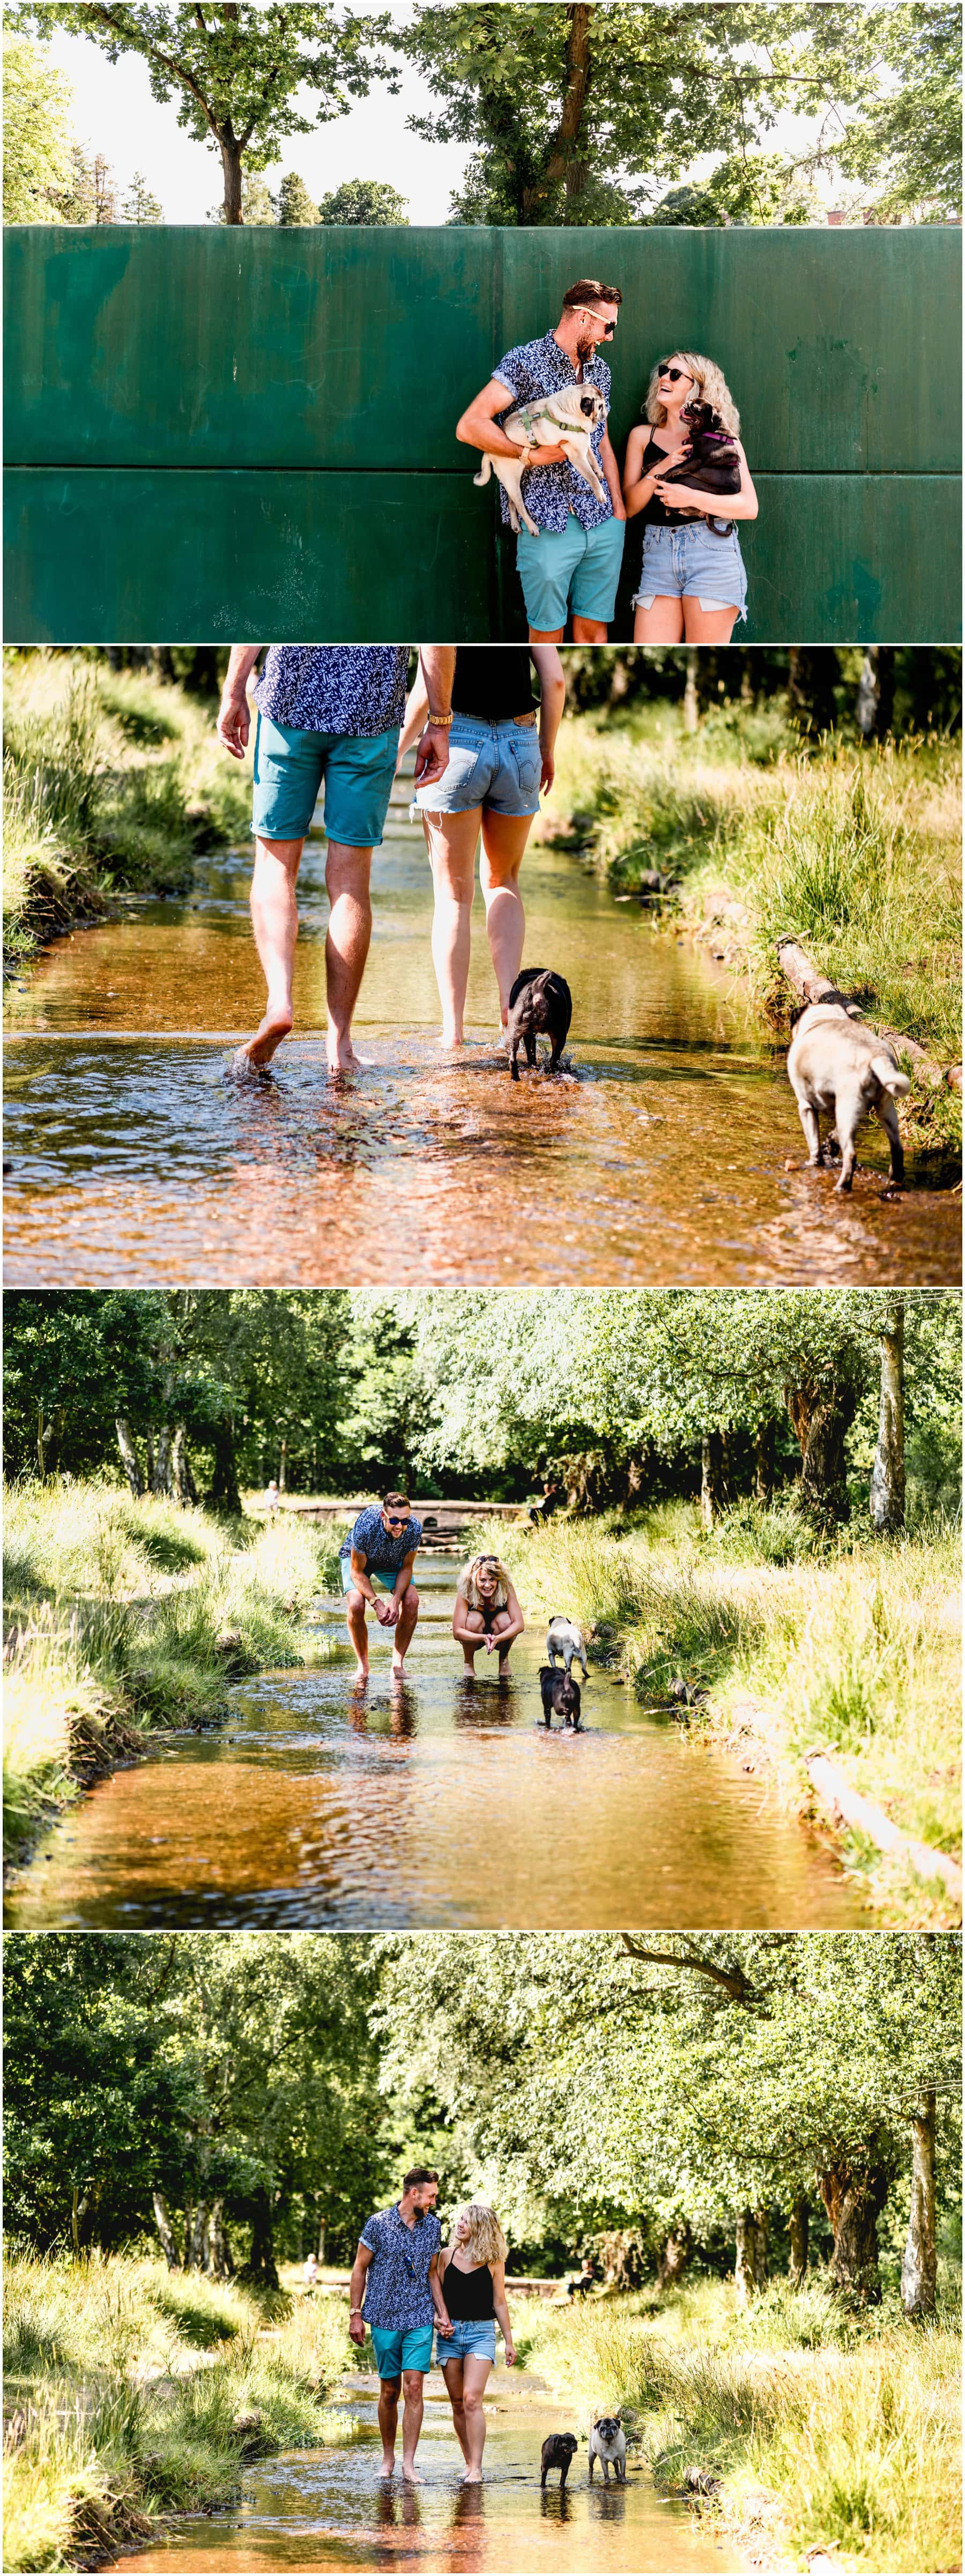 Couple's shoot with their two pugs paddling in the stream in flip flops